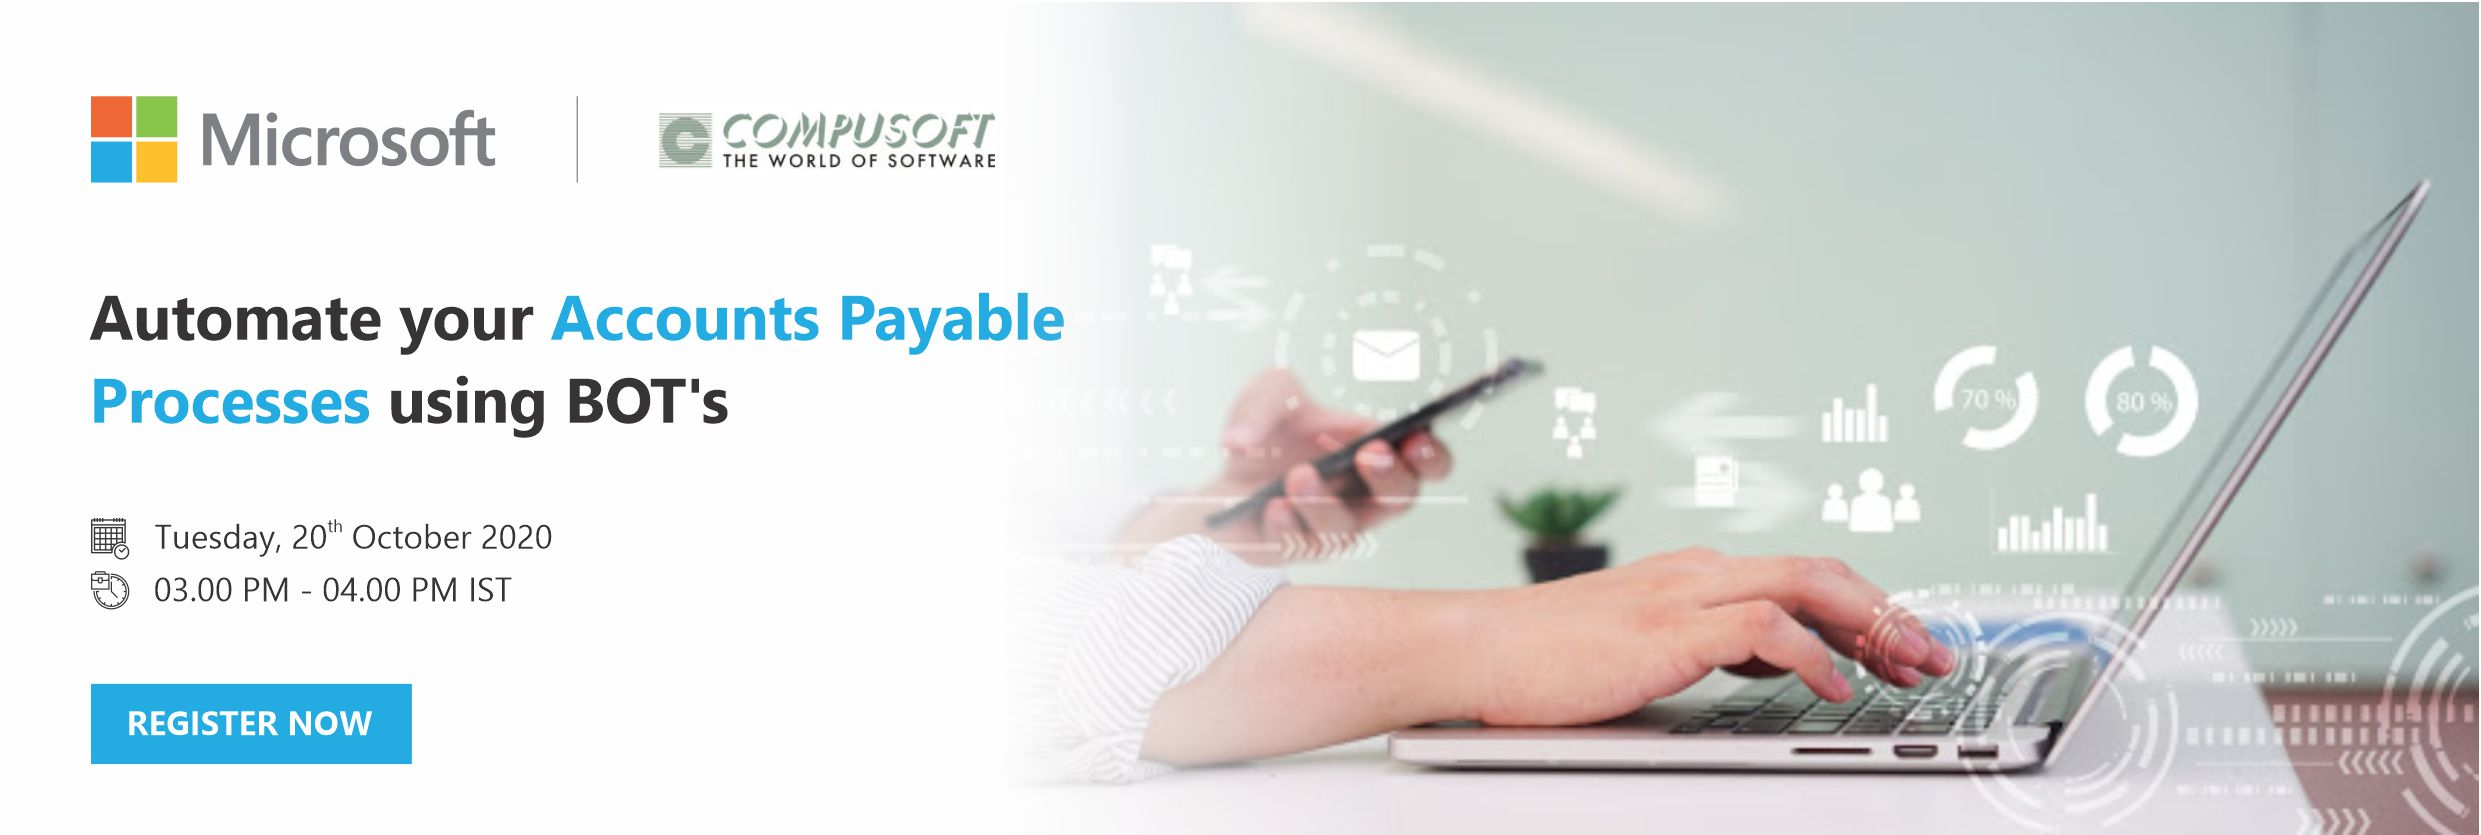 AUTOMATE YOUR ACCOUNTS PAYABLE PROCESSES USING BOT'S